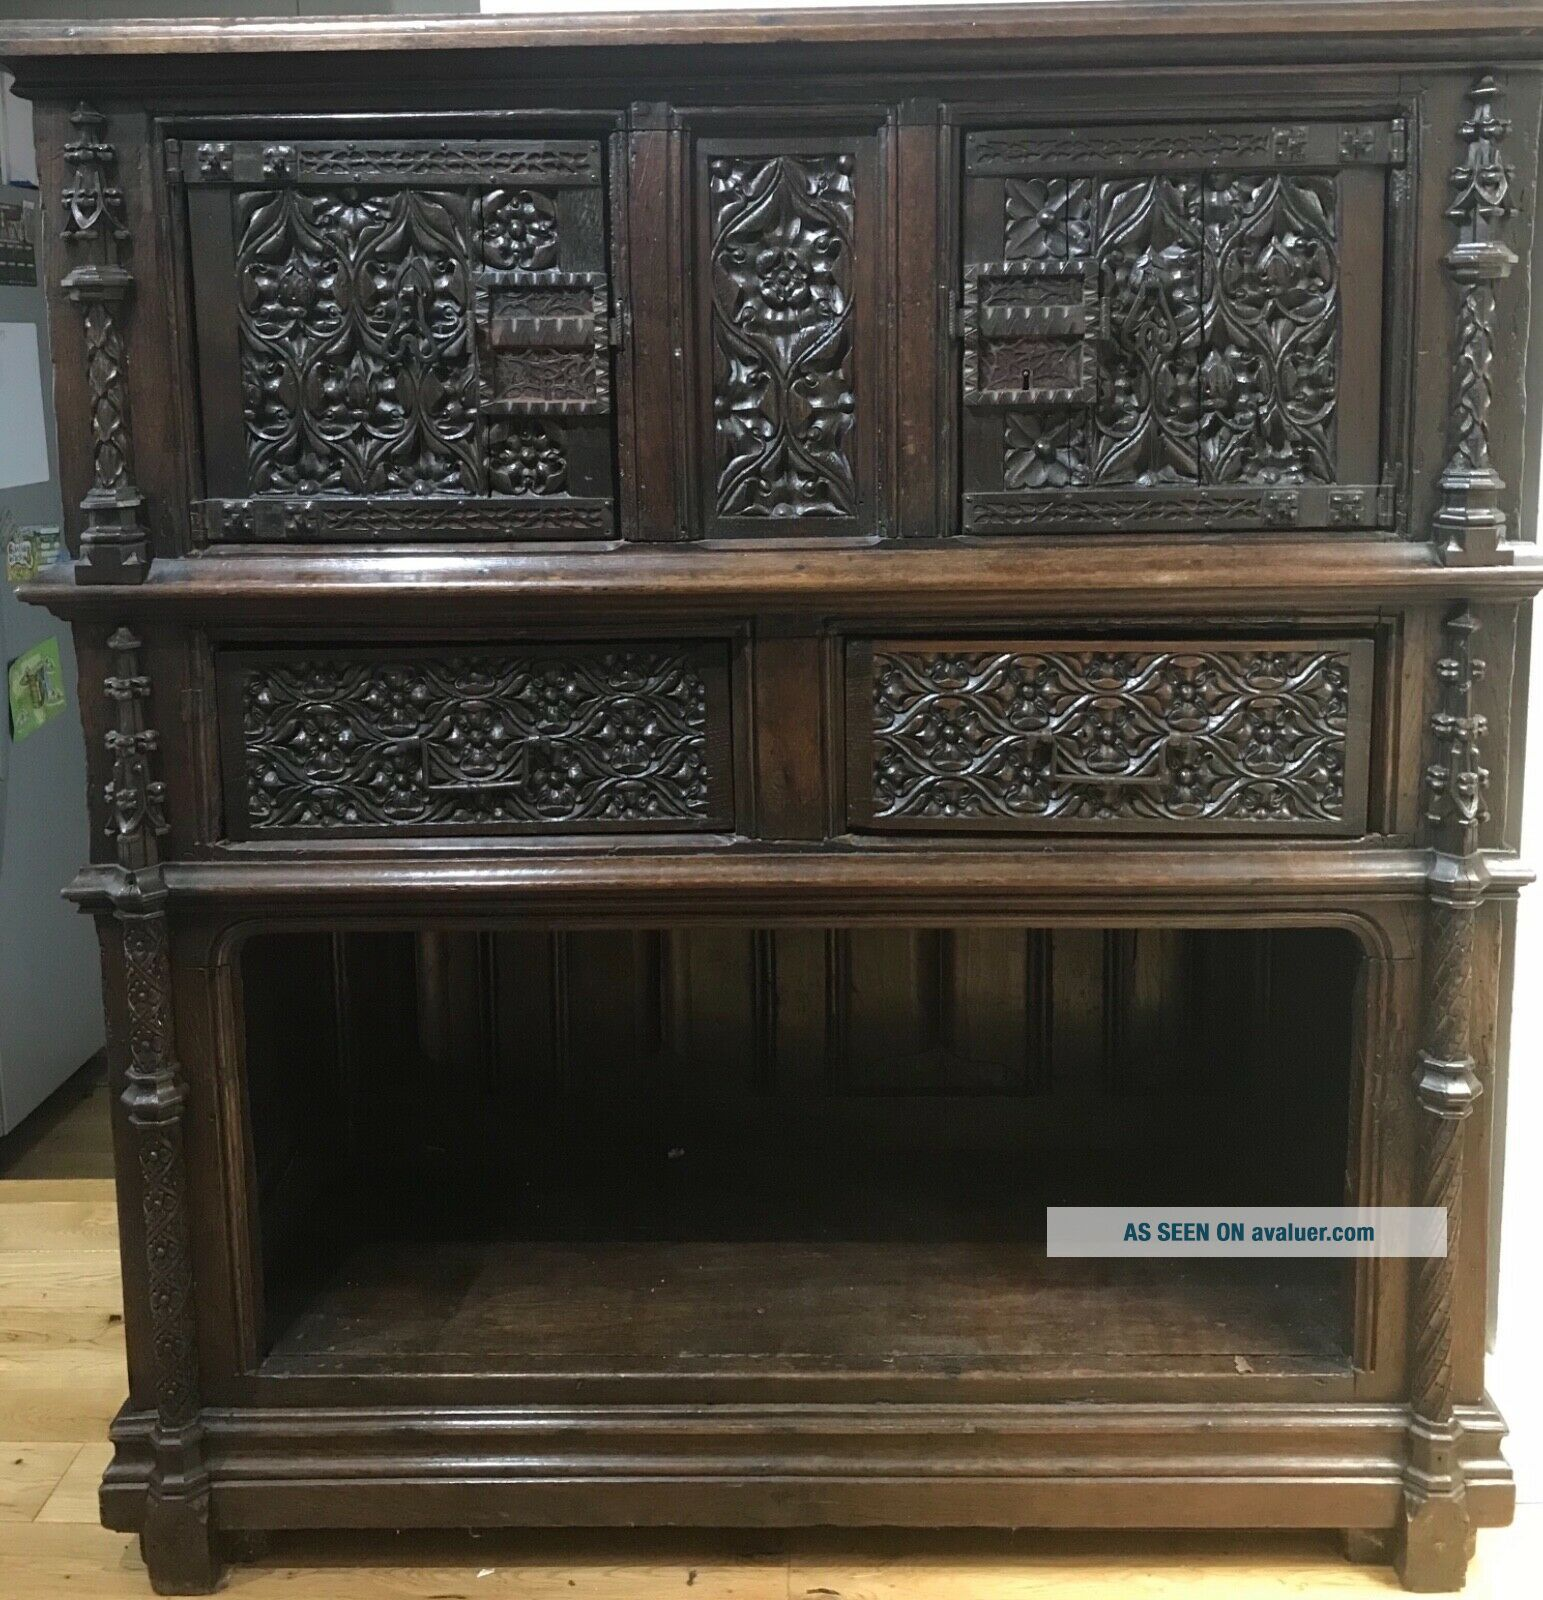 16th century oak cupboard